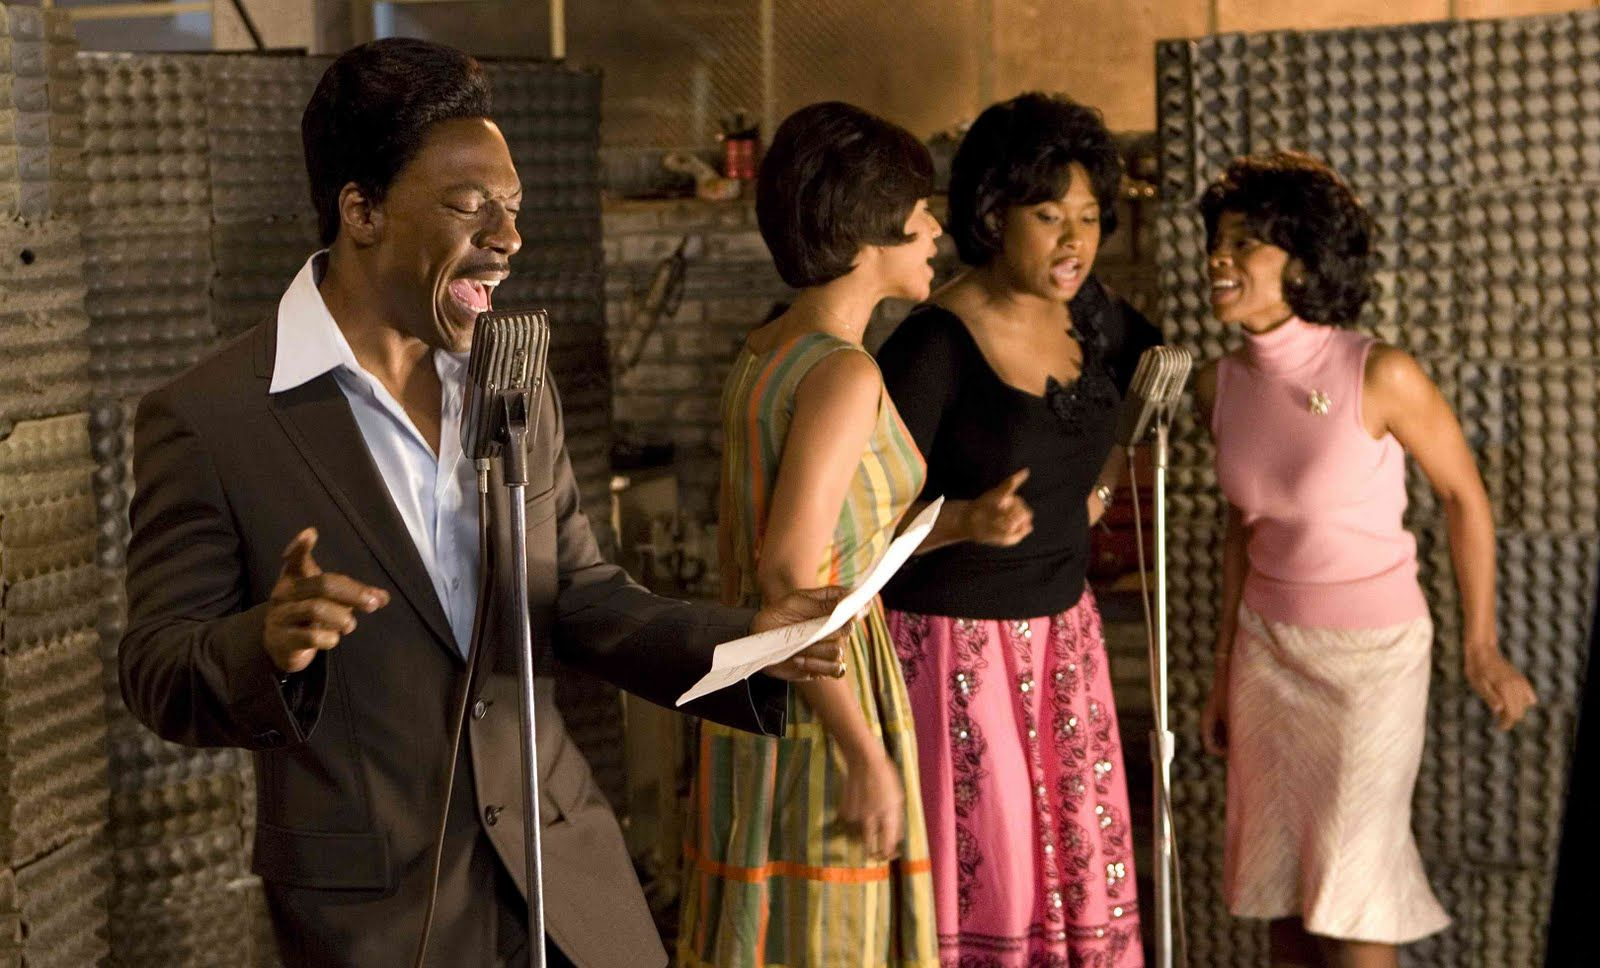 Dreamgirls | Dreamgirls movie, Eddie murphy, Jennifer hudson